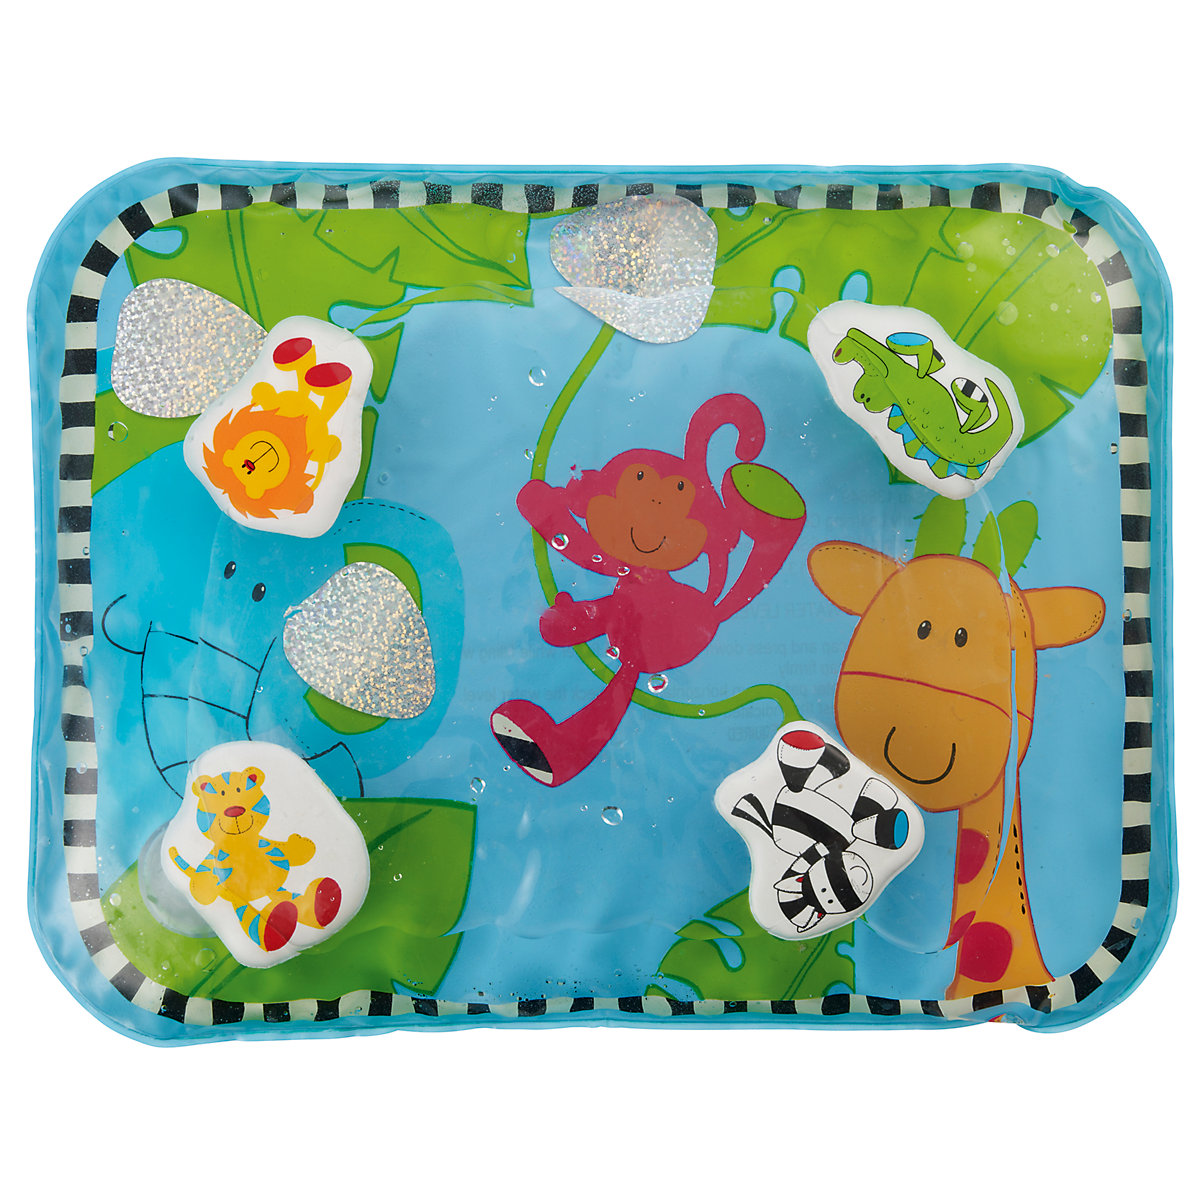 New ELC Boys and Girls Jungle Pat Mat Toy From 6 months